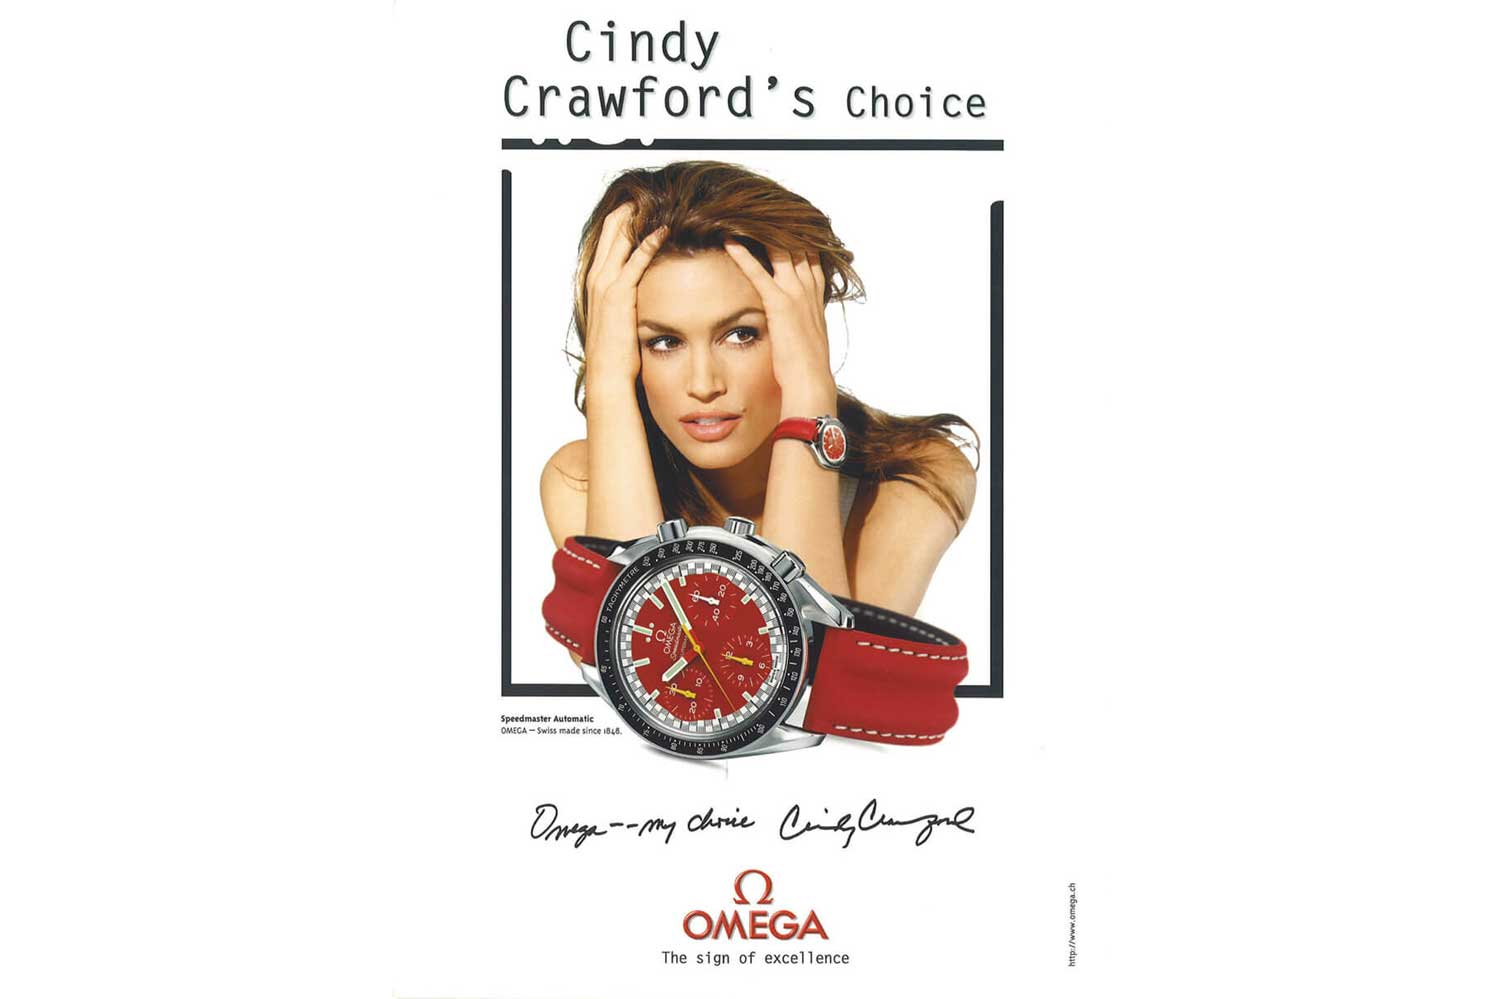 A long time Omega ambassador and super model, Cindy Crawford featured here on a 90s Omega advertisement wearing the 1996 Racing Speedmaster Reduced Launched by Michael Schumacher (Image: omegawatches.com)